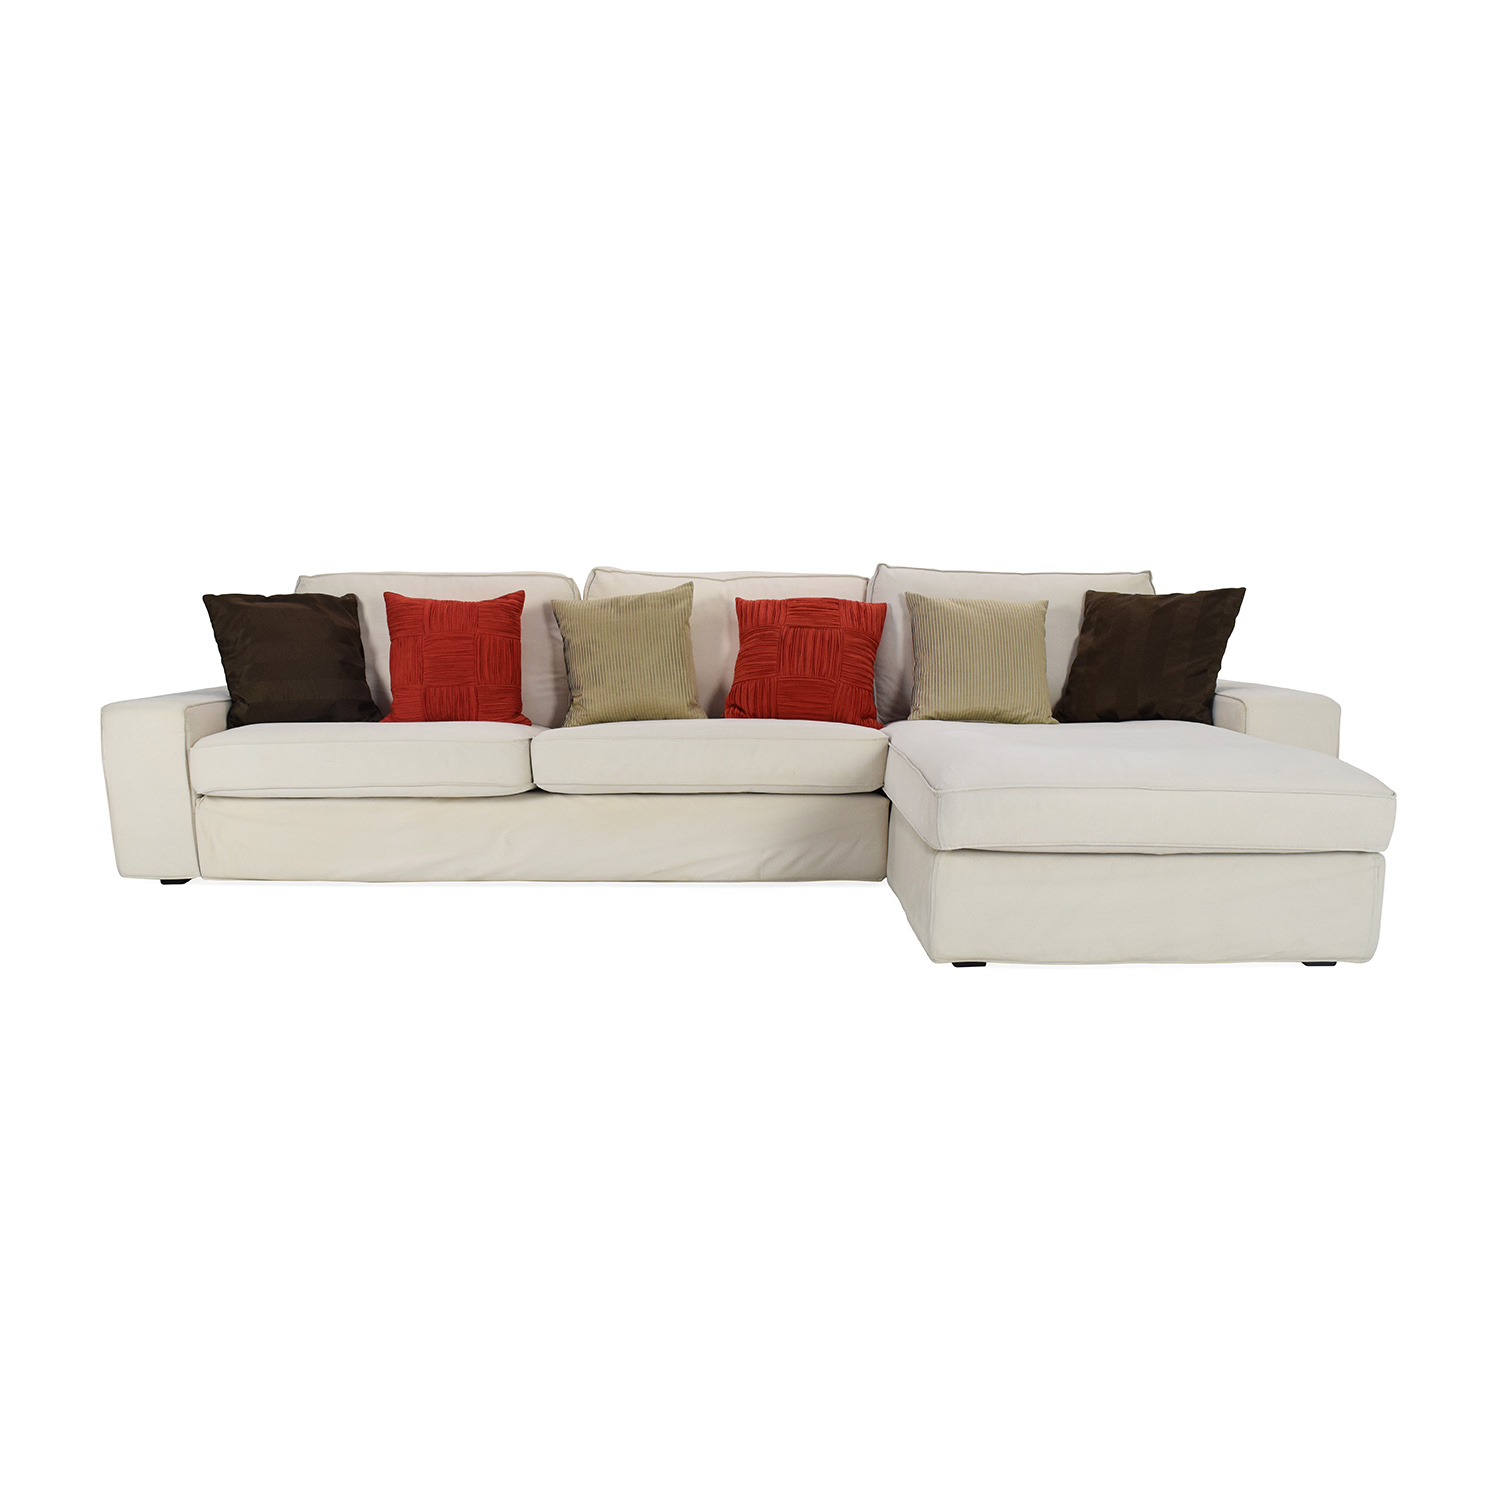 Sofa Lounge Nyc 83 Off Ikea Ikea Kivik Chaise Lounge Sofas